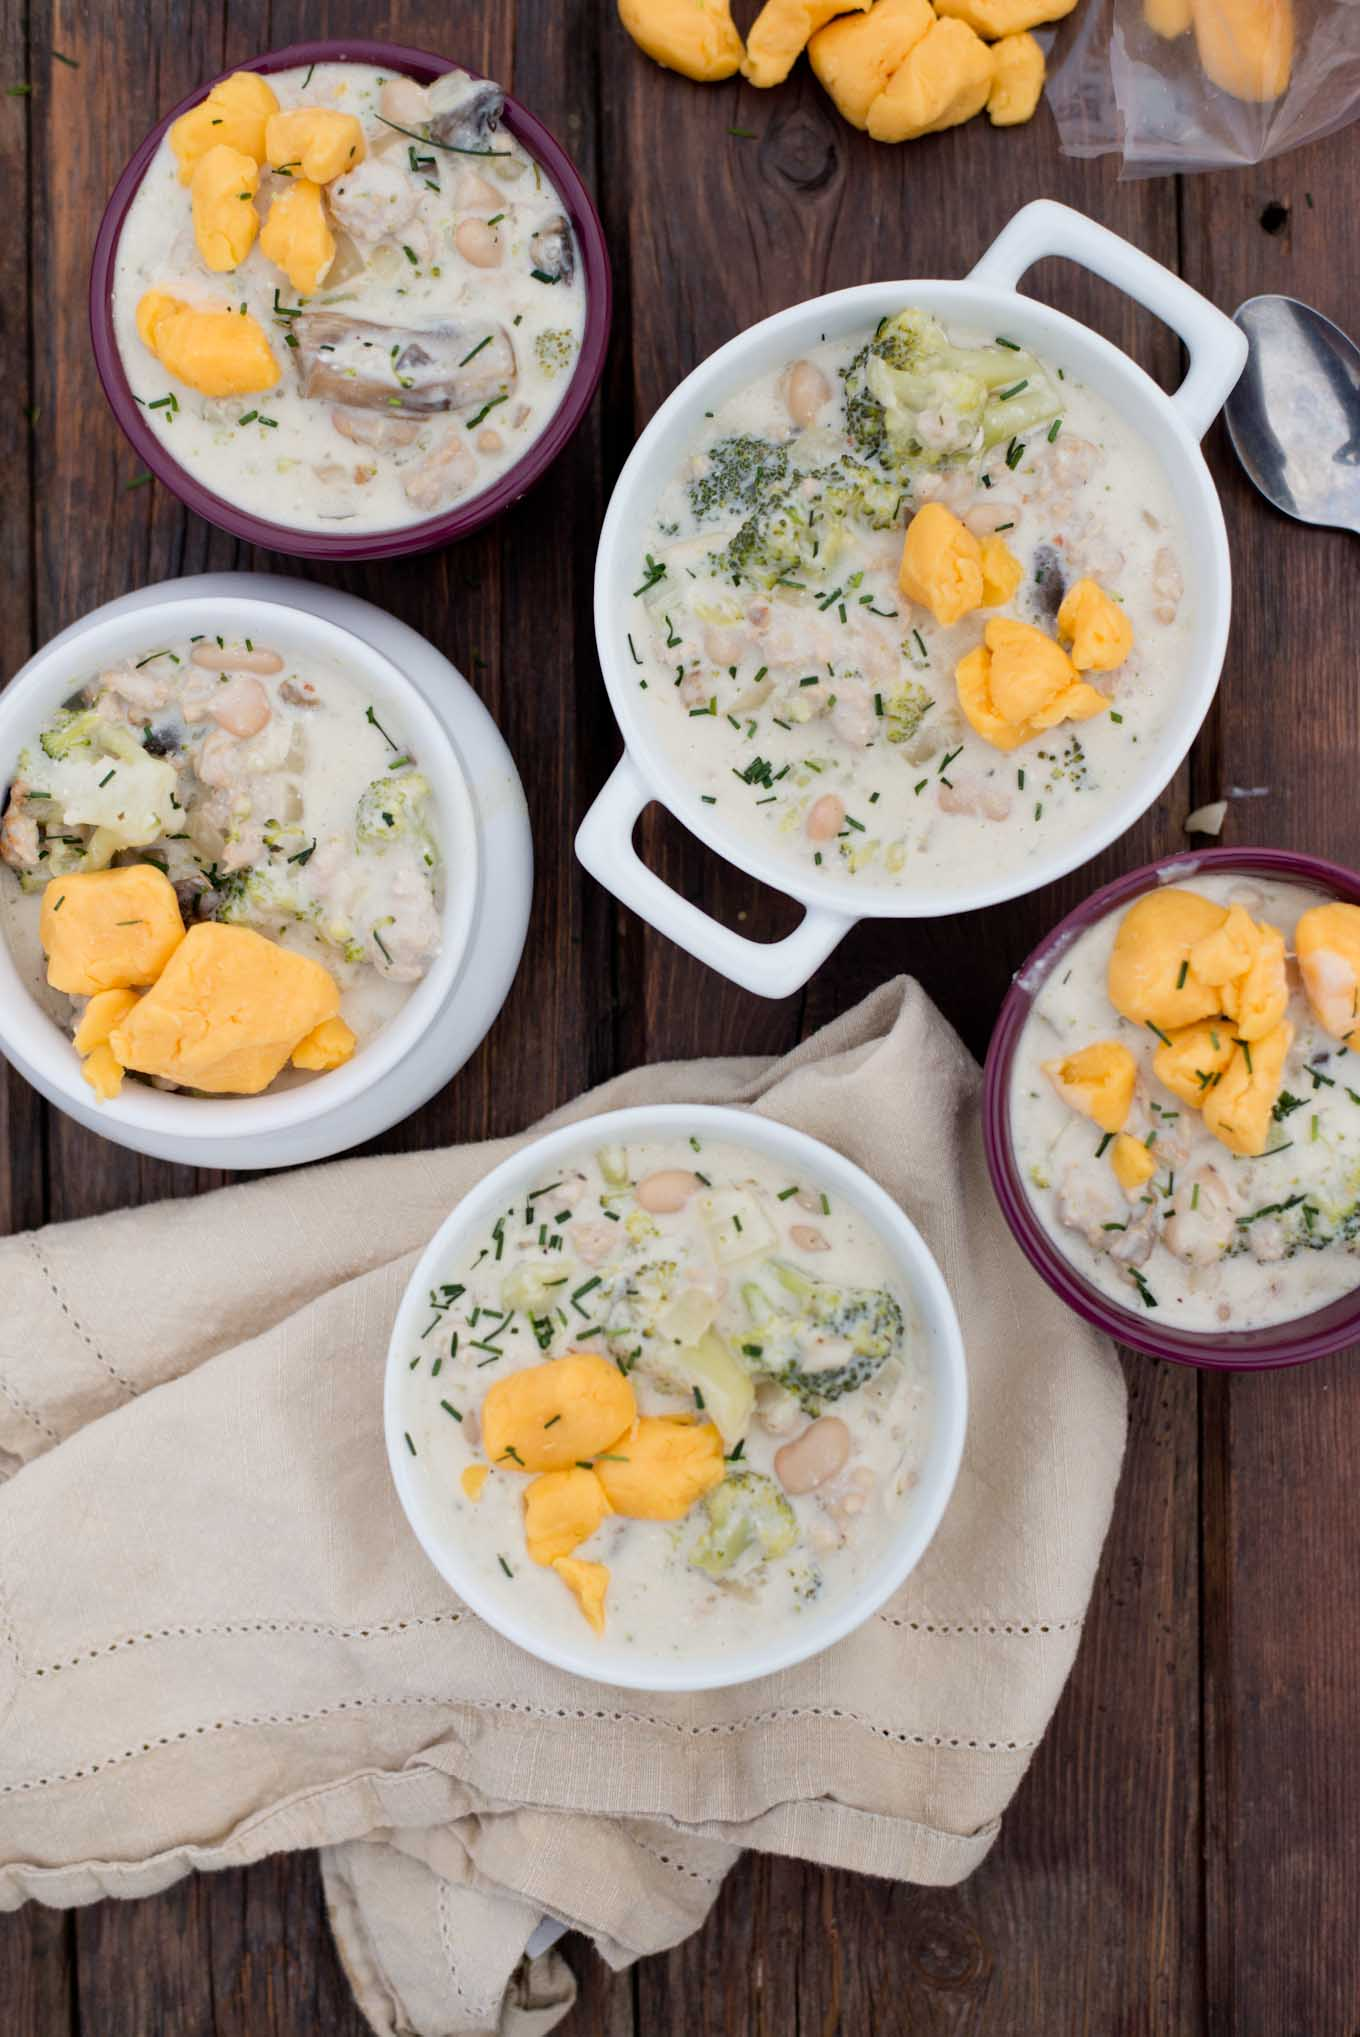 Creamy and delicious this healthified version of broccoli cheddar soup has half the cheese and extra protein.